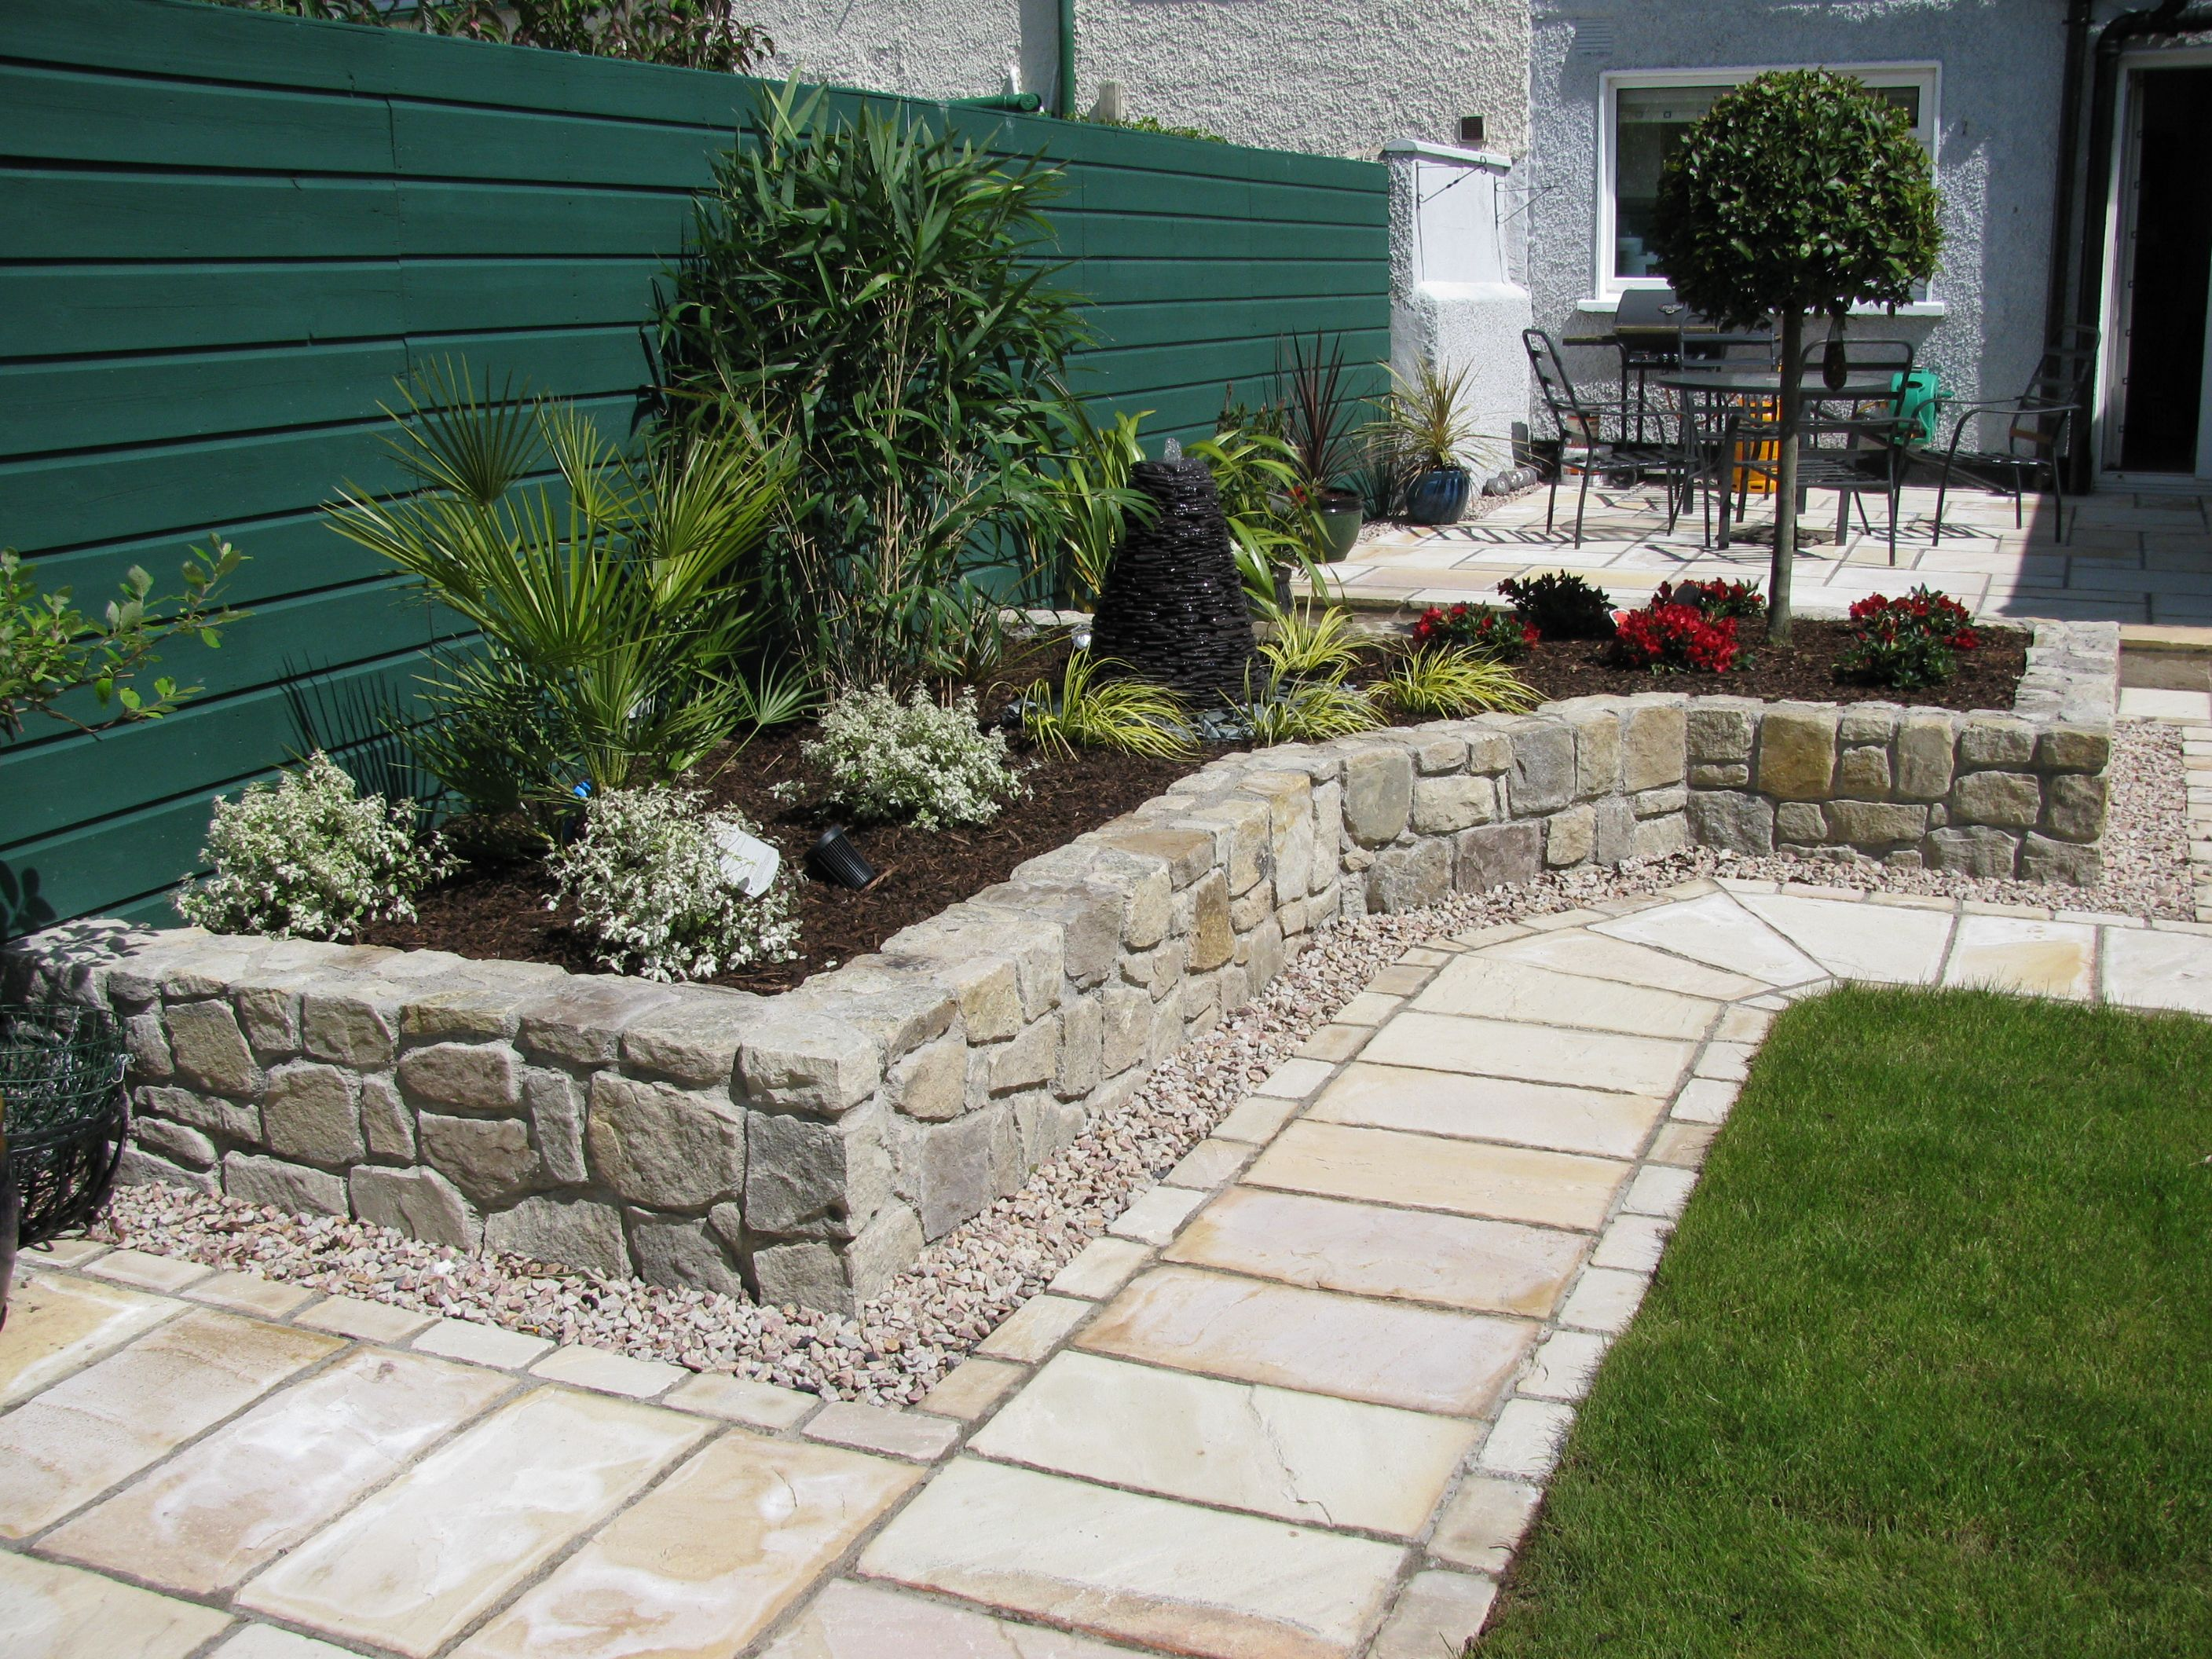 Stone Patio Design Ideas cheap garden paving ideas home decoration paver patio design ideas Pictures Of Landscaping Small Yards Landscaping Design Small Yard Stone Patio Design Ideas Landscaping